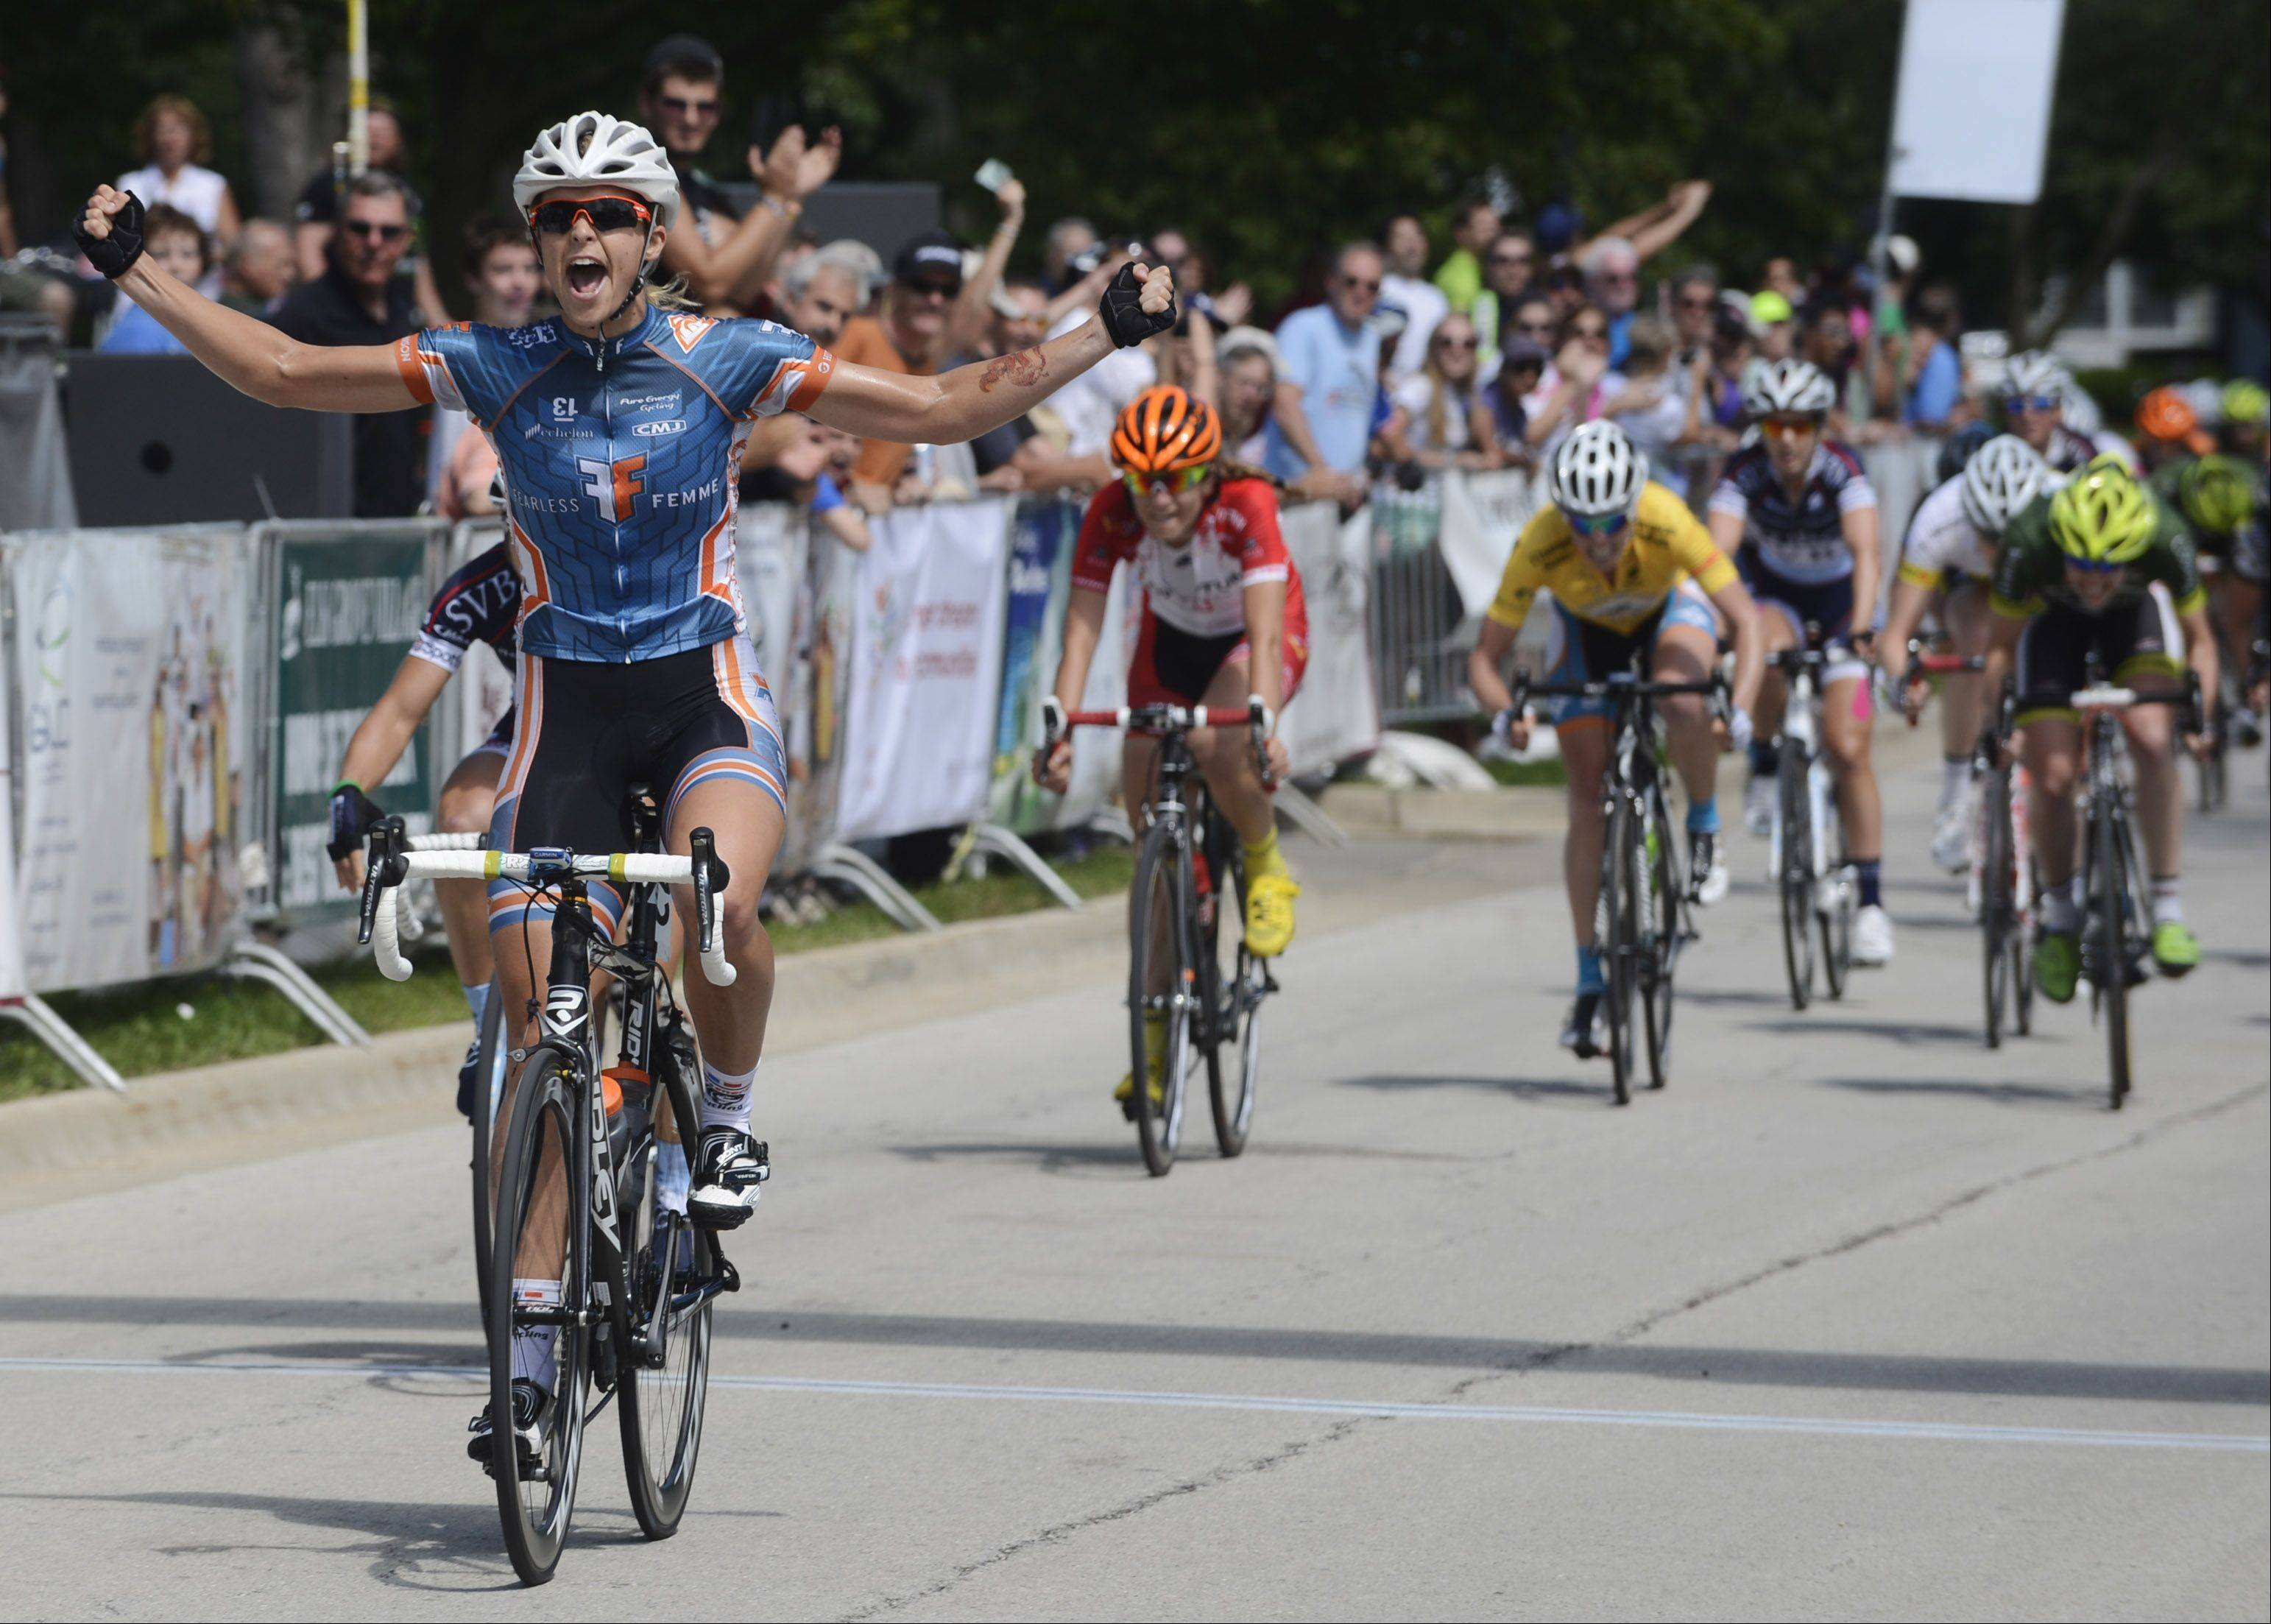 Tour of Elk Grove 'gets better and better'